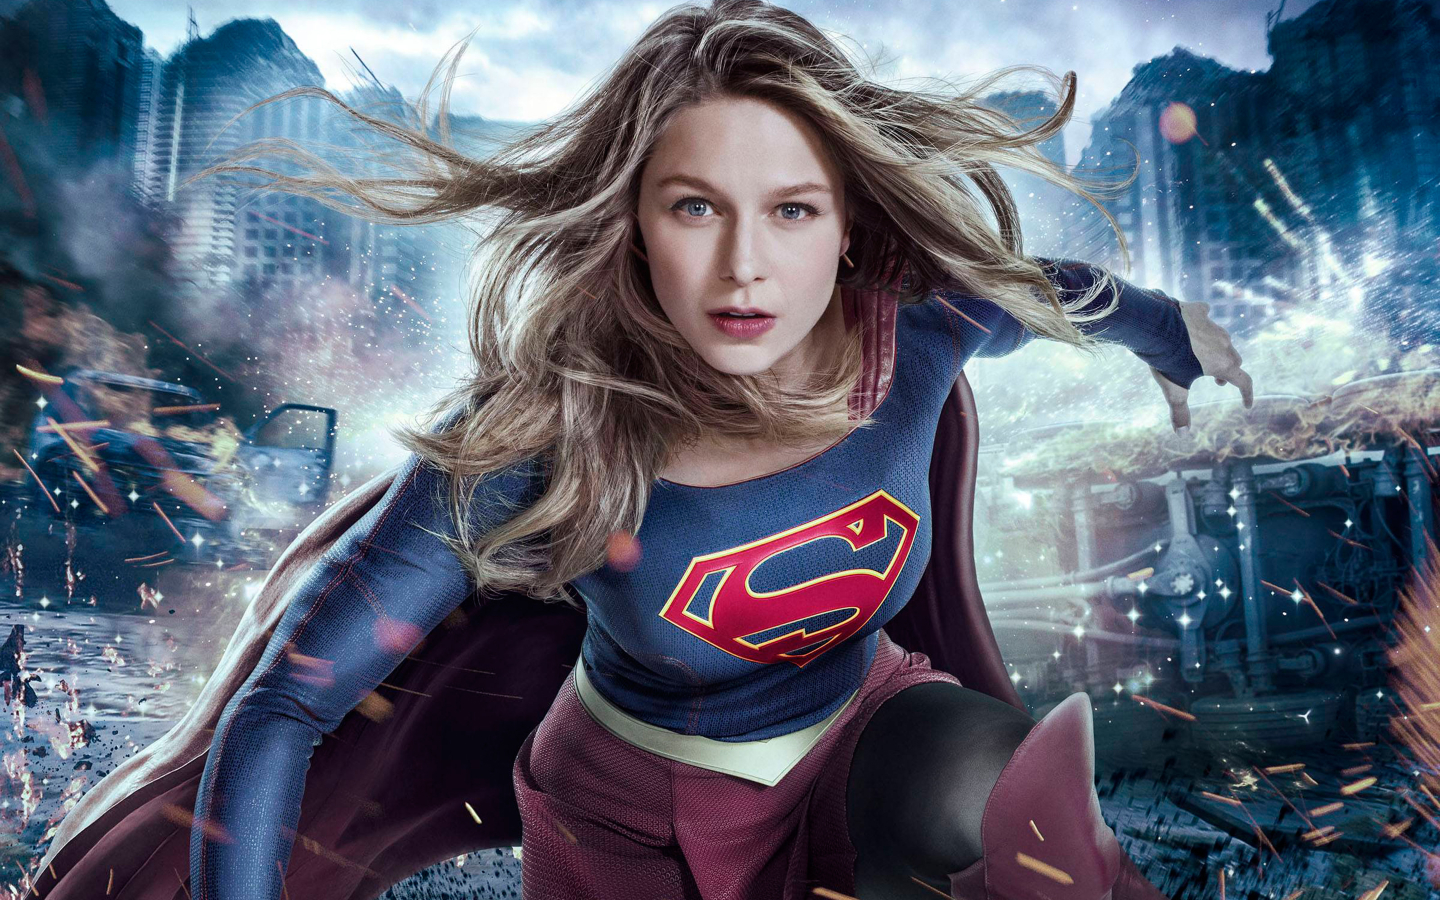 1440x900 Supergirl Tv Show 1440x900 Resolution HD 4k Wallpapers ...